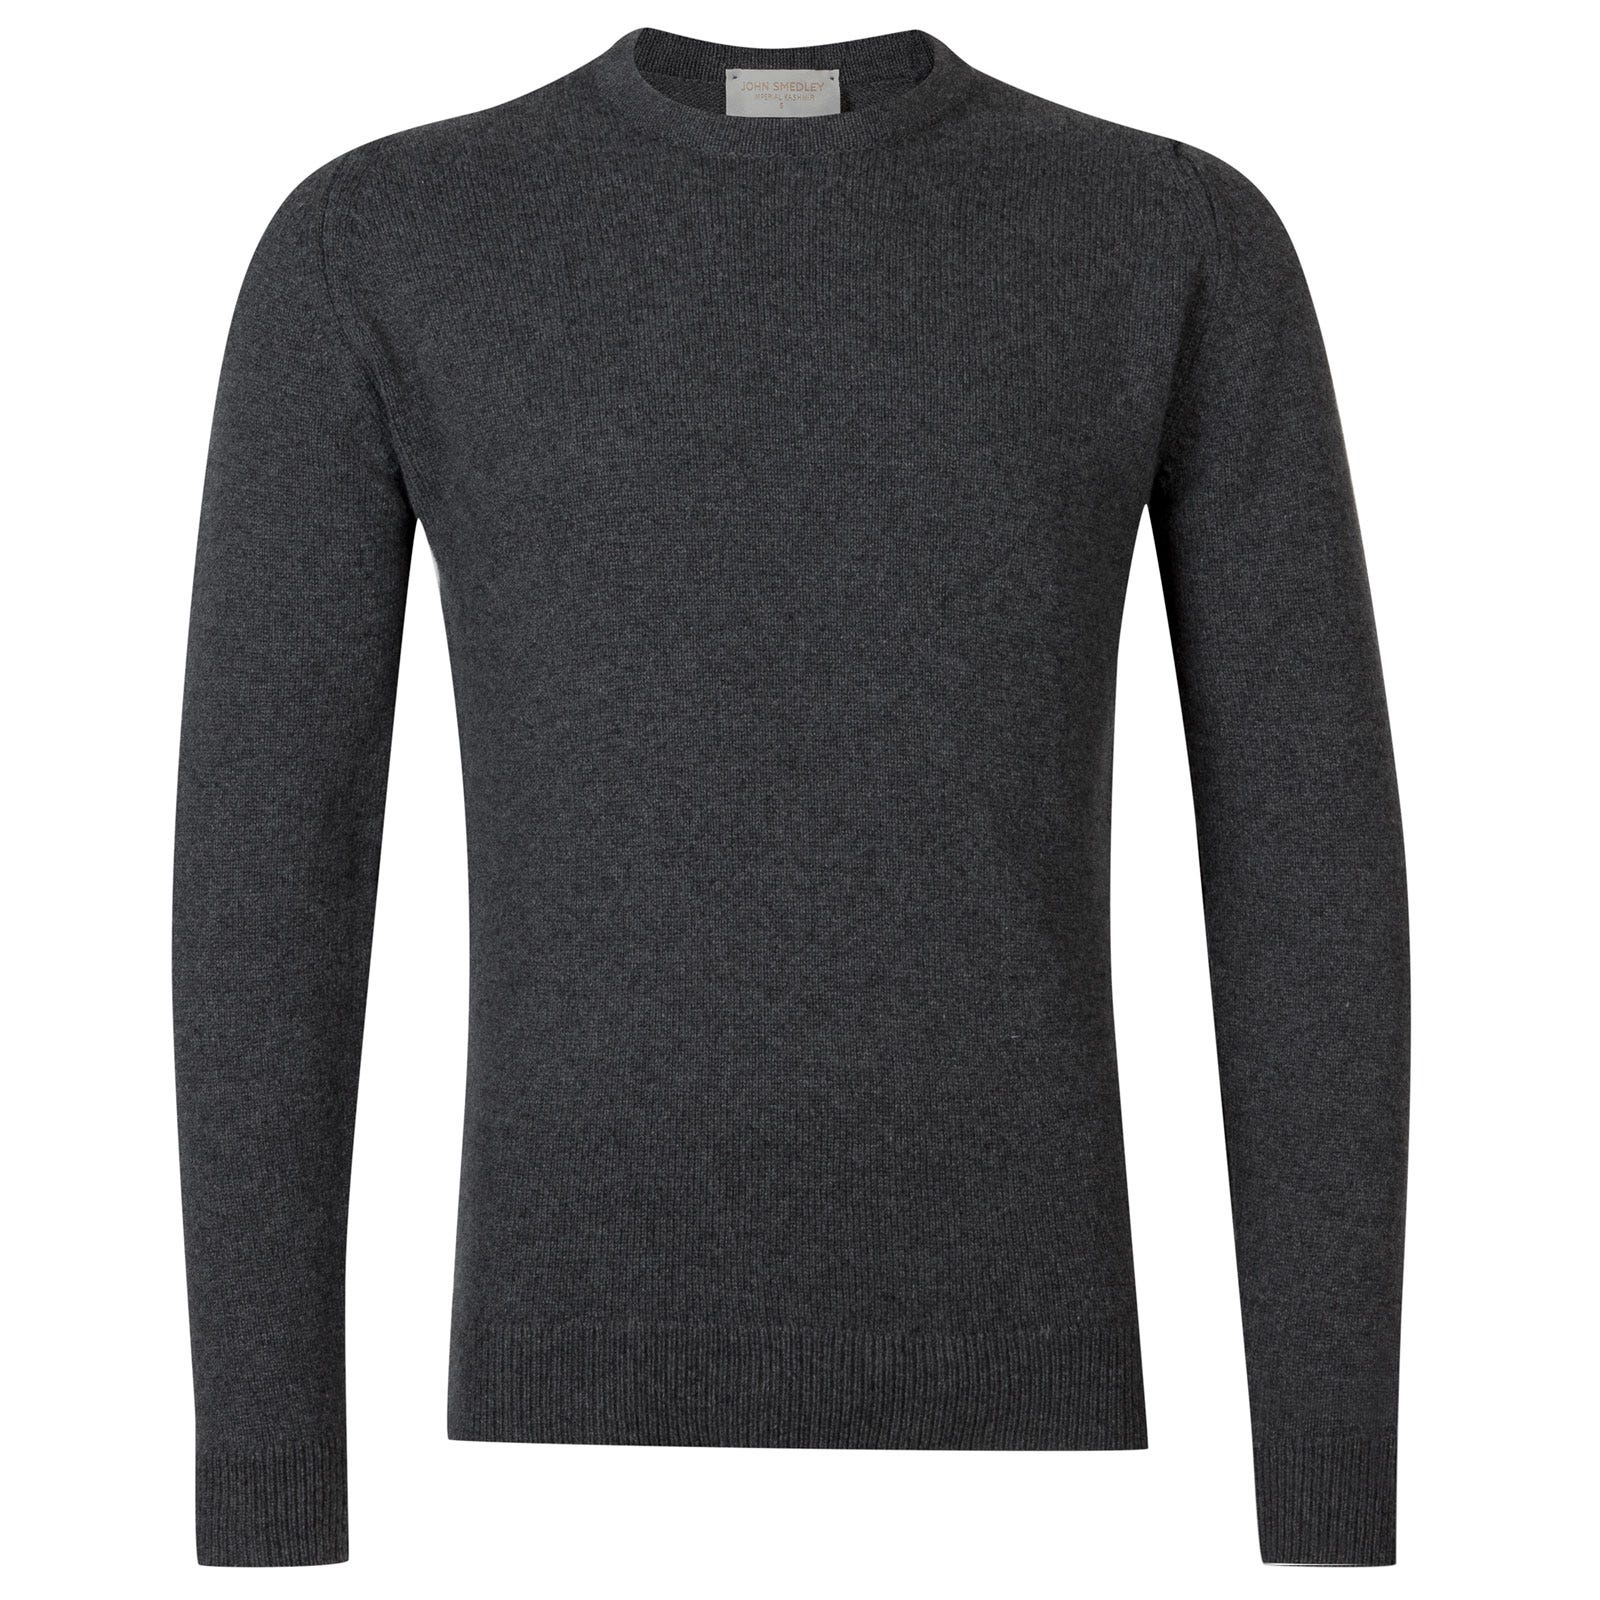 John Smedley Crowford Wool and Cashmere Pullover in Charcoal-XXL